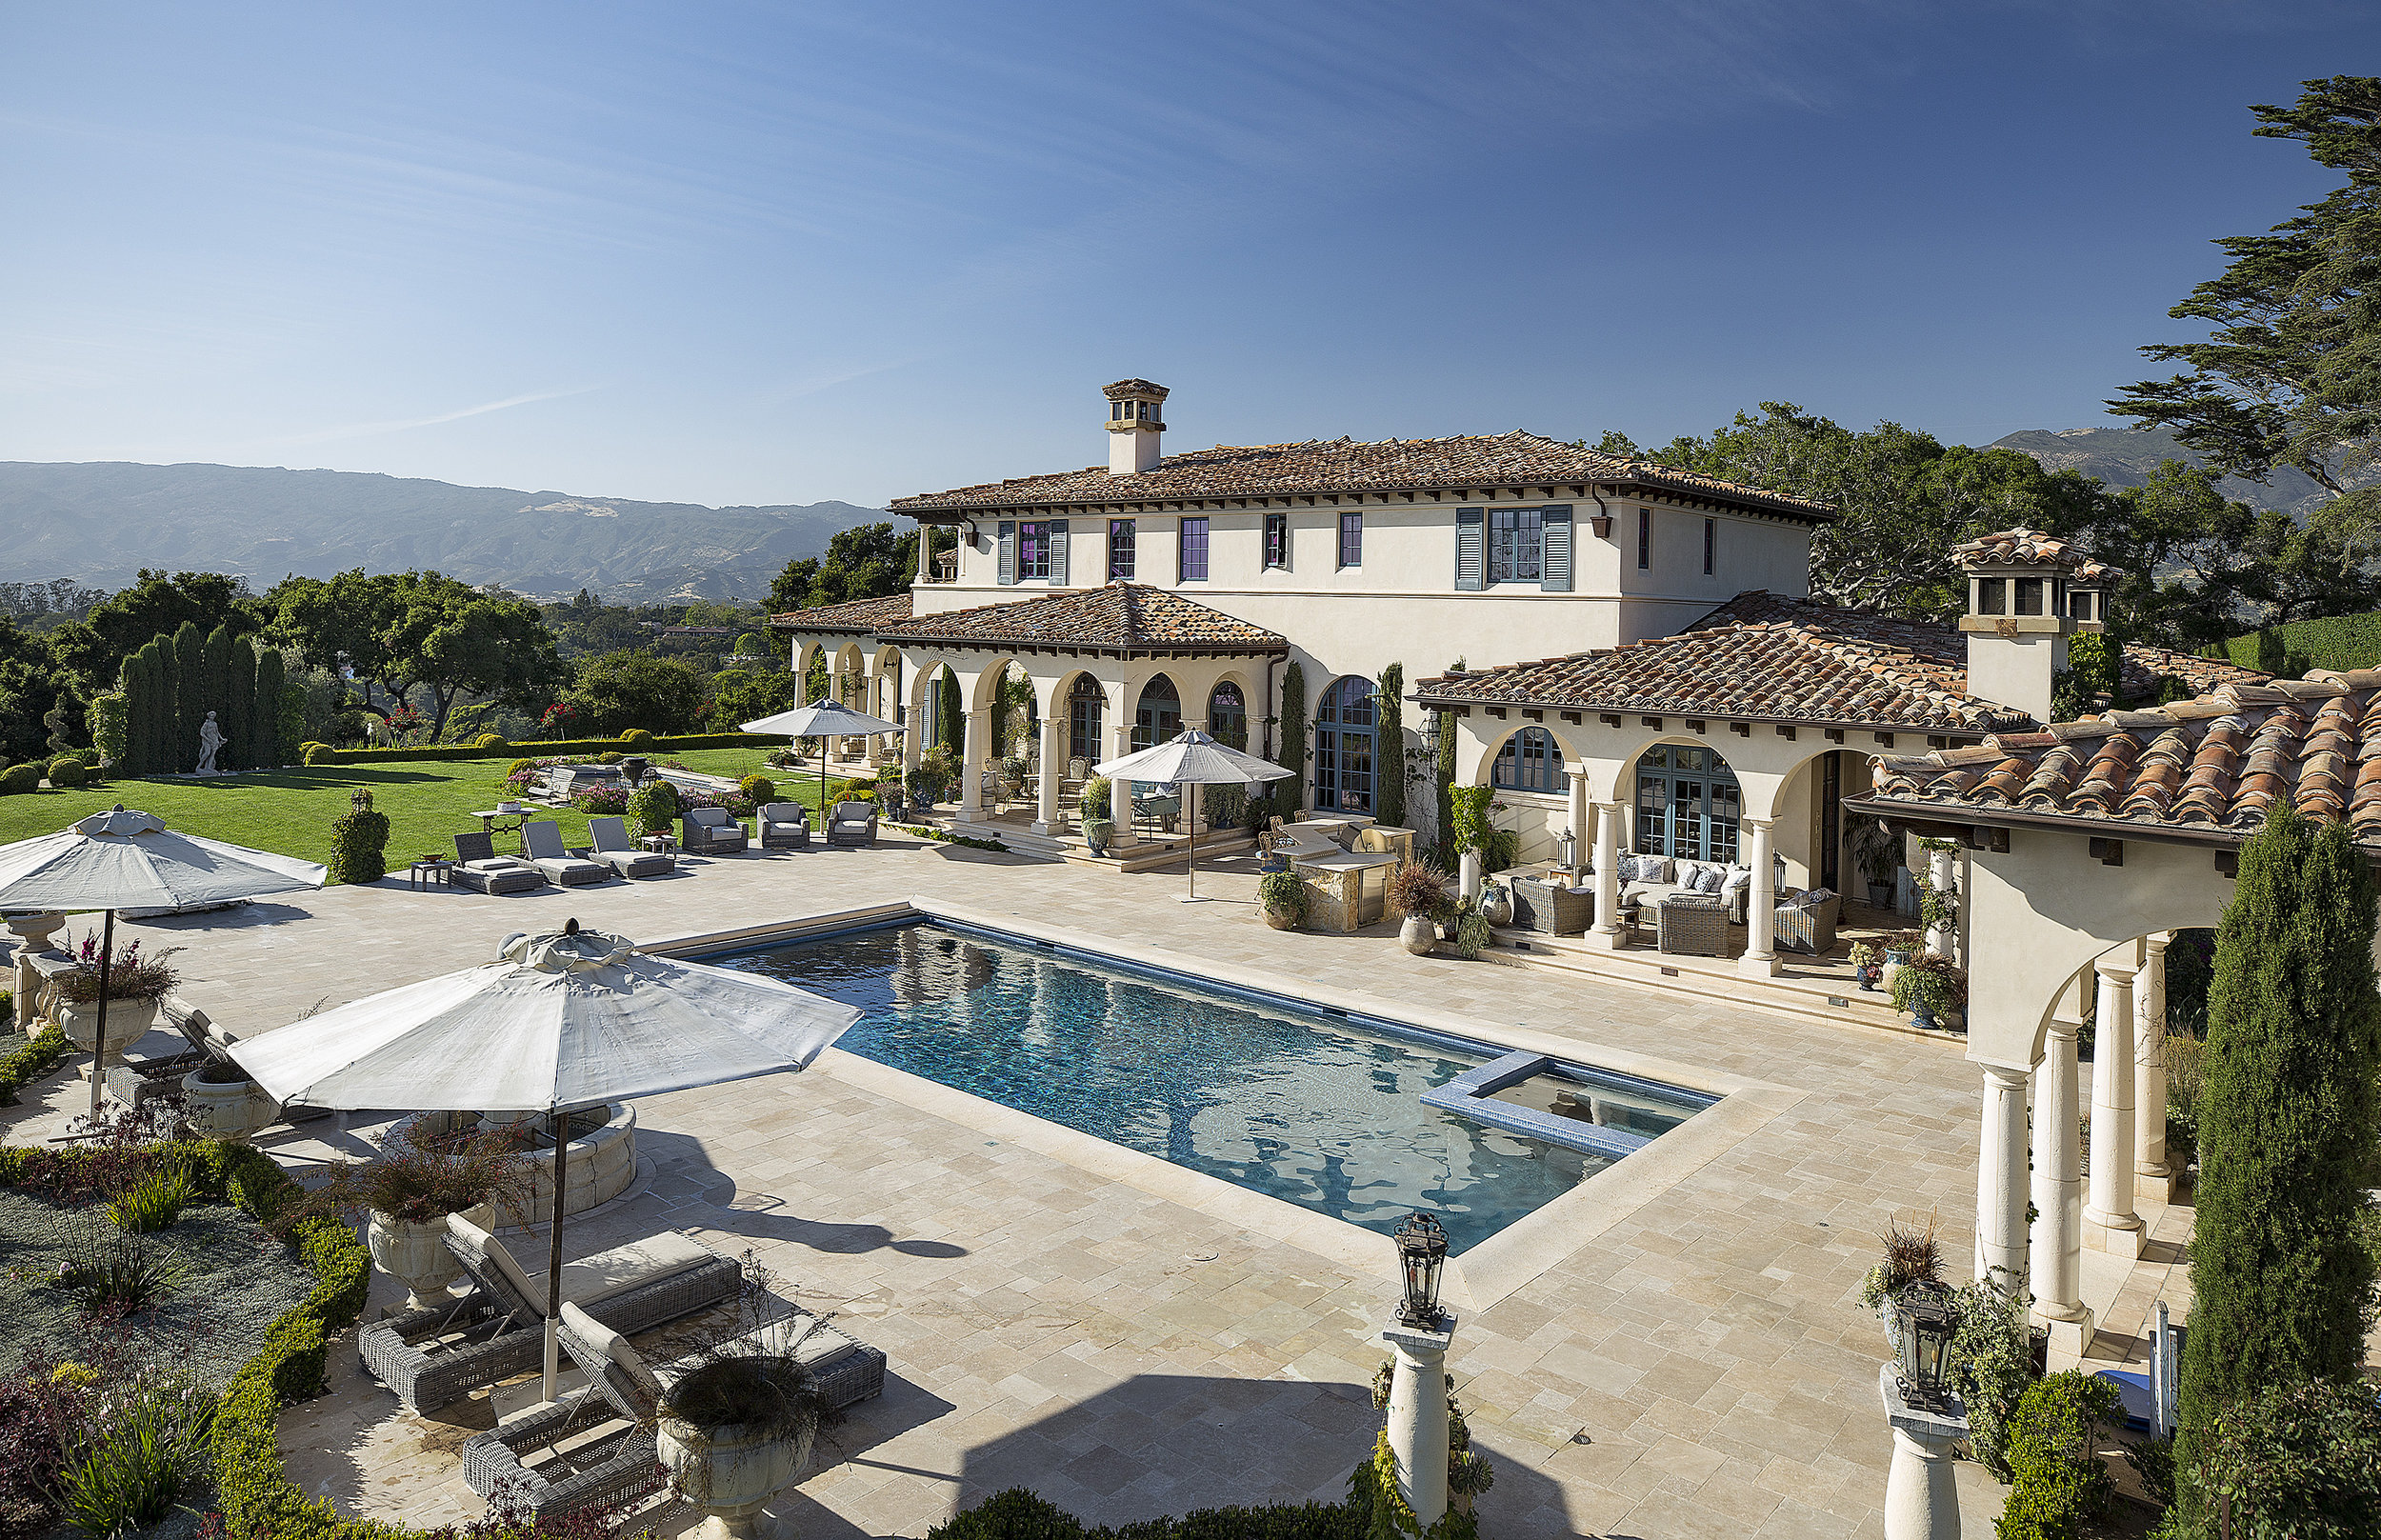 SEVEN PENDING SALES, TWO OVER $6M - AS OF TODAY, THE BELOW ESTATES ARE PENDING OVER $6M- 4230 CRESTA AVE - $15,250,000- 1486 CANTERA AVE - $6,250,000(One Riskin Partners' listing, listing prices noted)